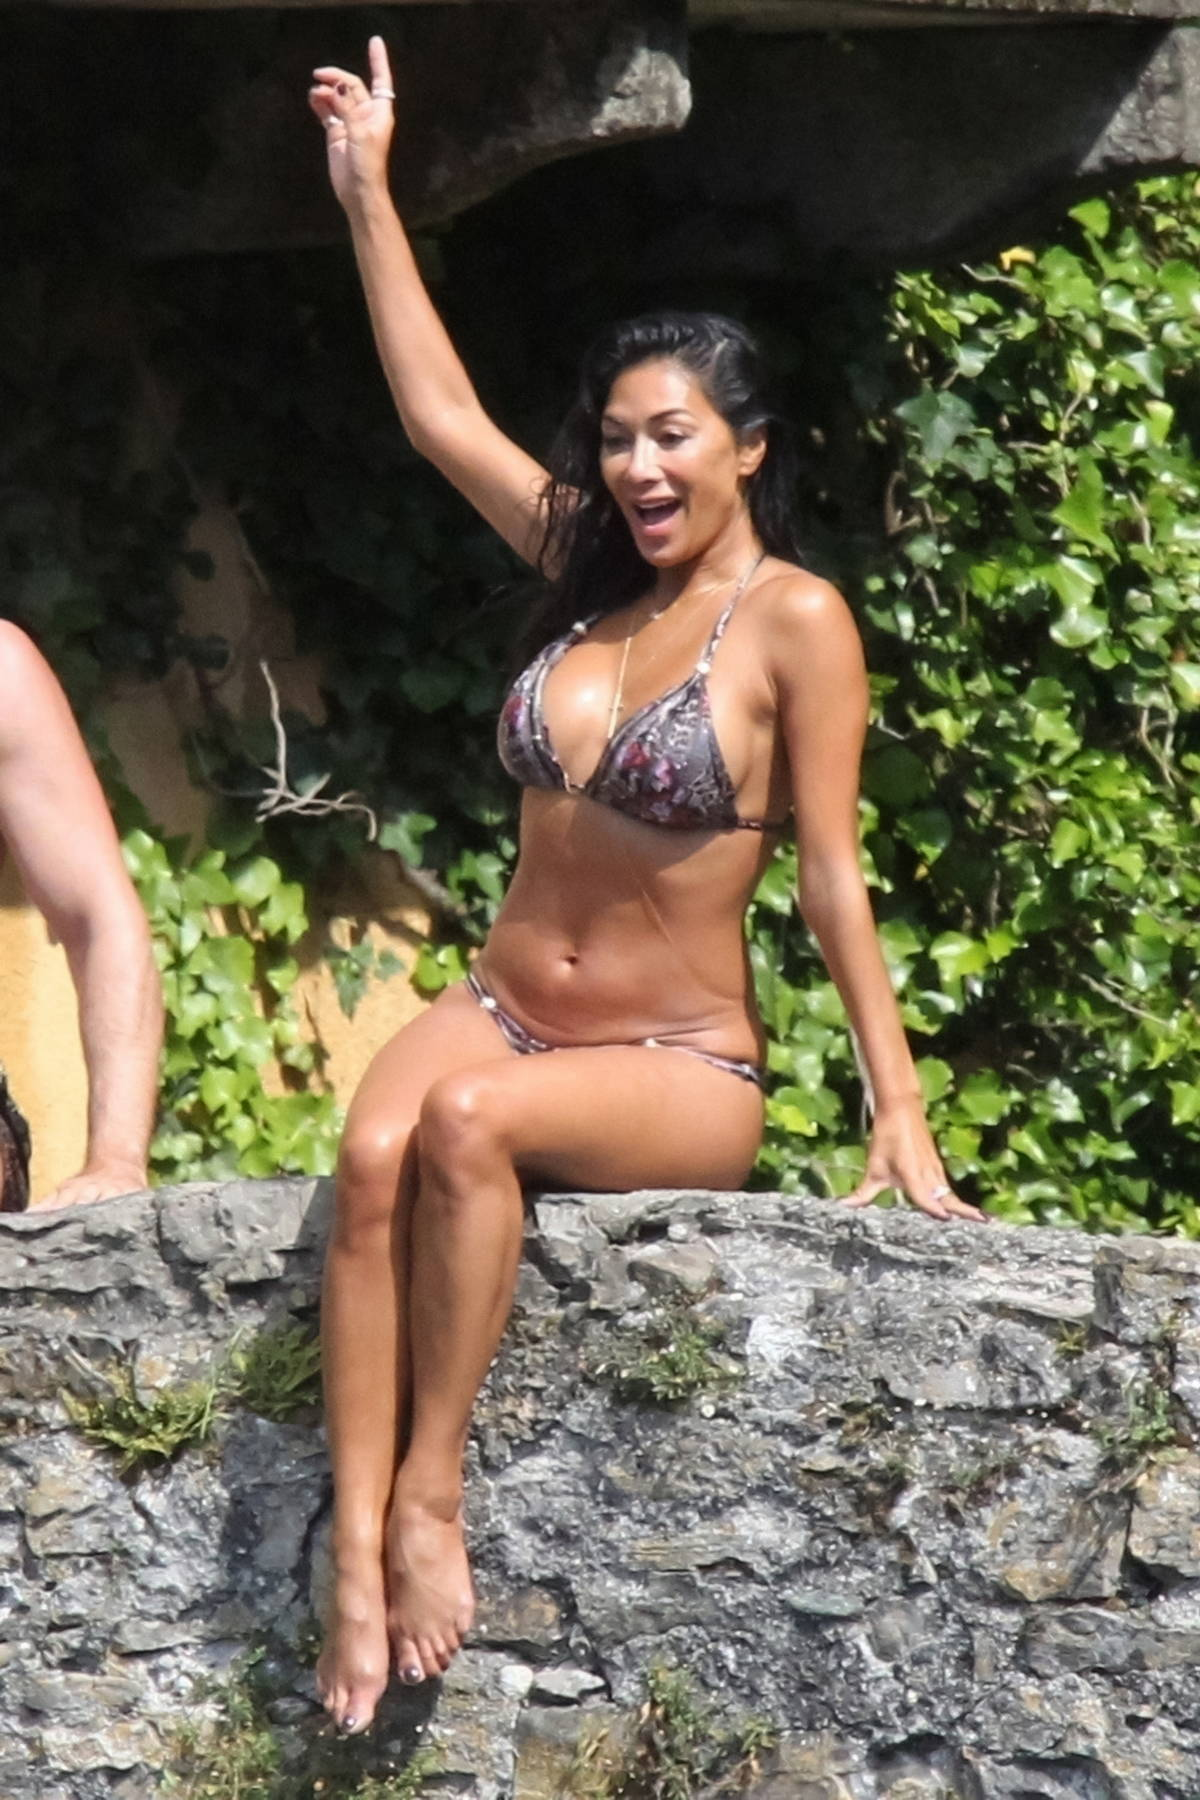 Nicole Scherzinger spotted in a bikini while jumping off a bridge during her vacation in Italy